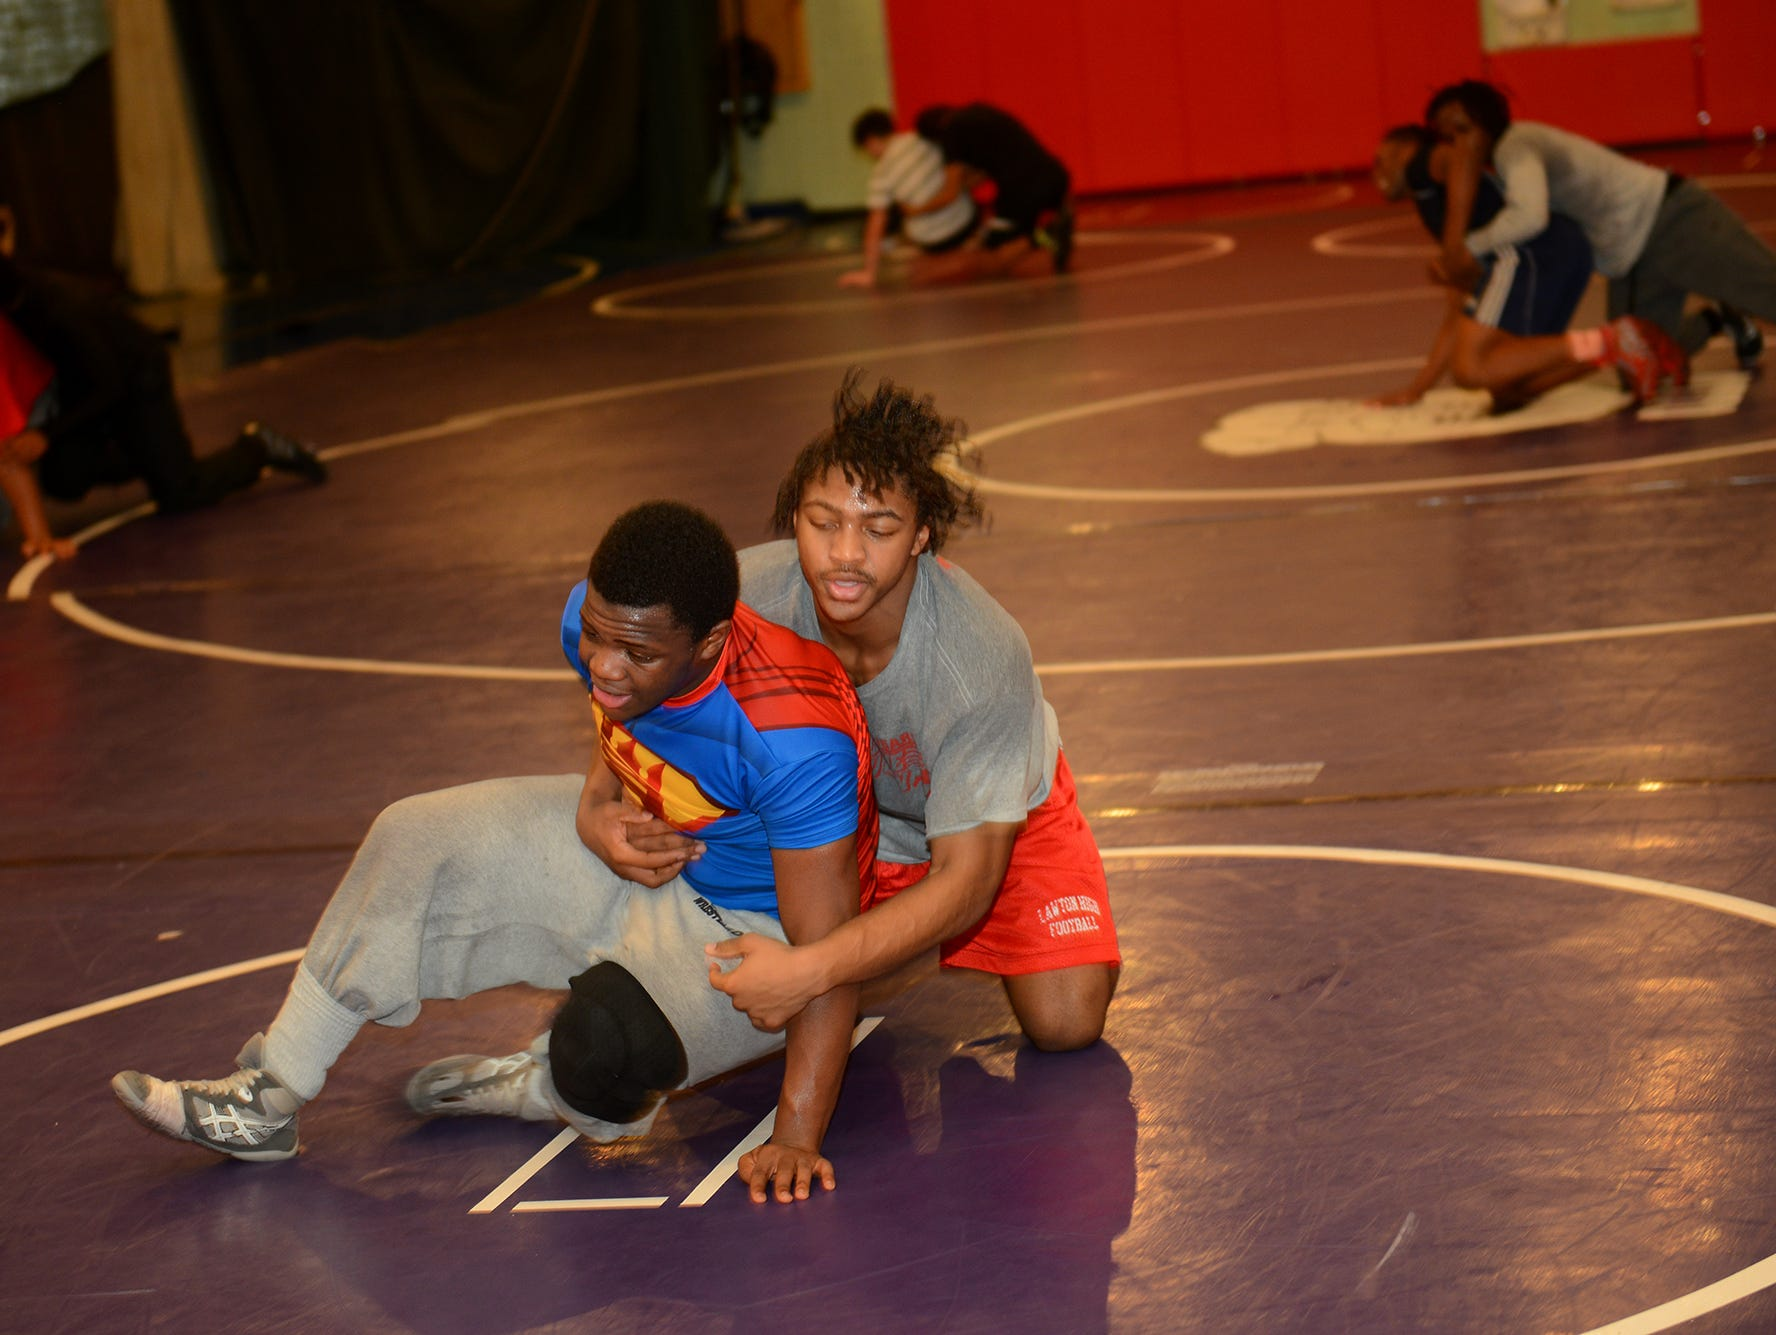 Wrestlers Elijah Stevenson, left, and Ratavian Rinkines warm up with sprints on Tuesday, Feb. 7, 2017 at Sexton High School.